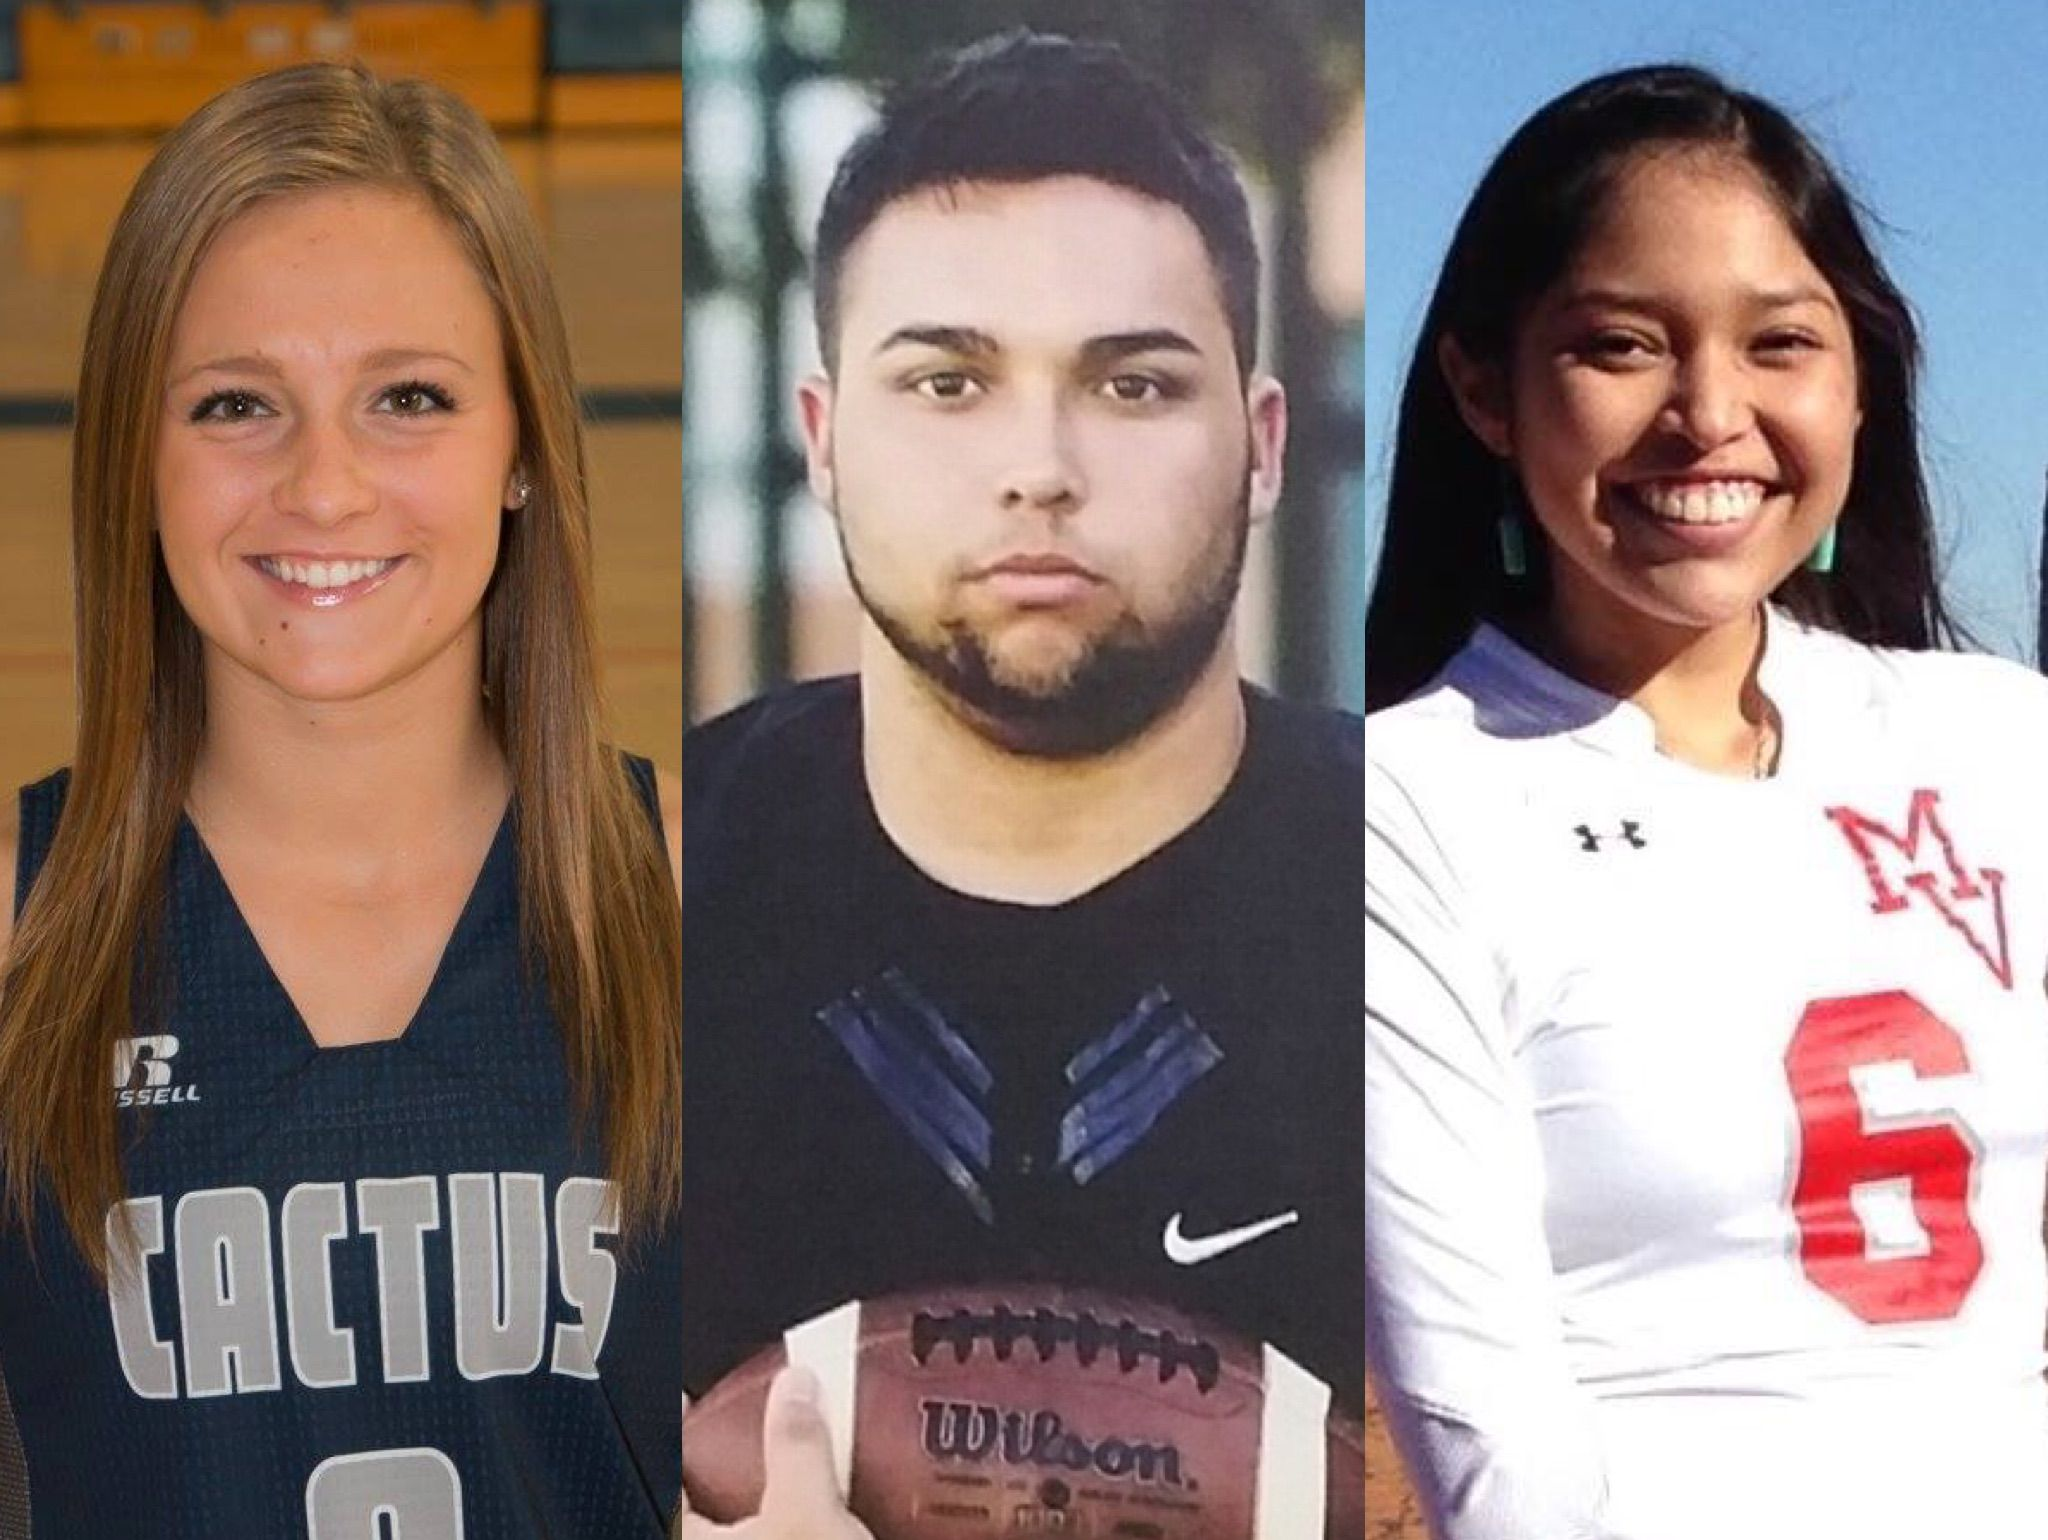 Congratulations to the Arizona Sports Awards Athletes of the Week, Nikolai Wahlers and Corinne Querrey, and the High Achiever of the Week, Nekiyah Draper, for Nov. 19-26.